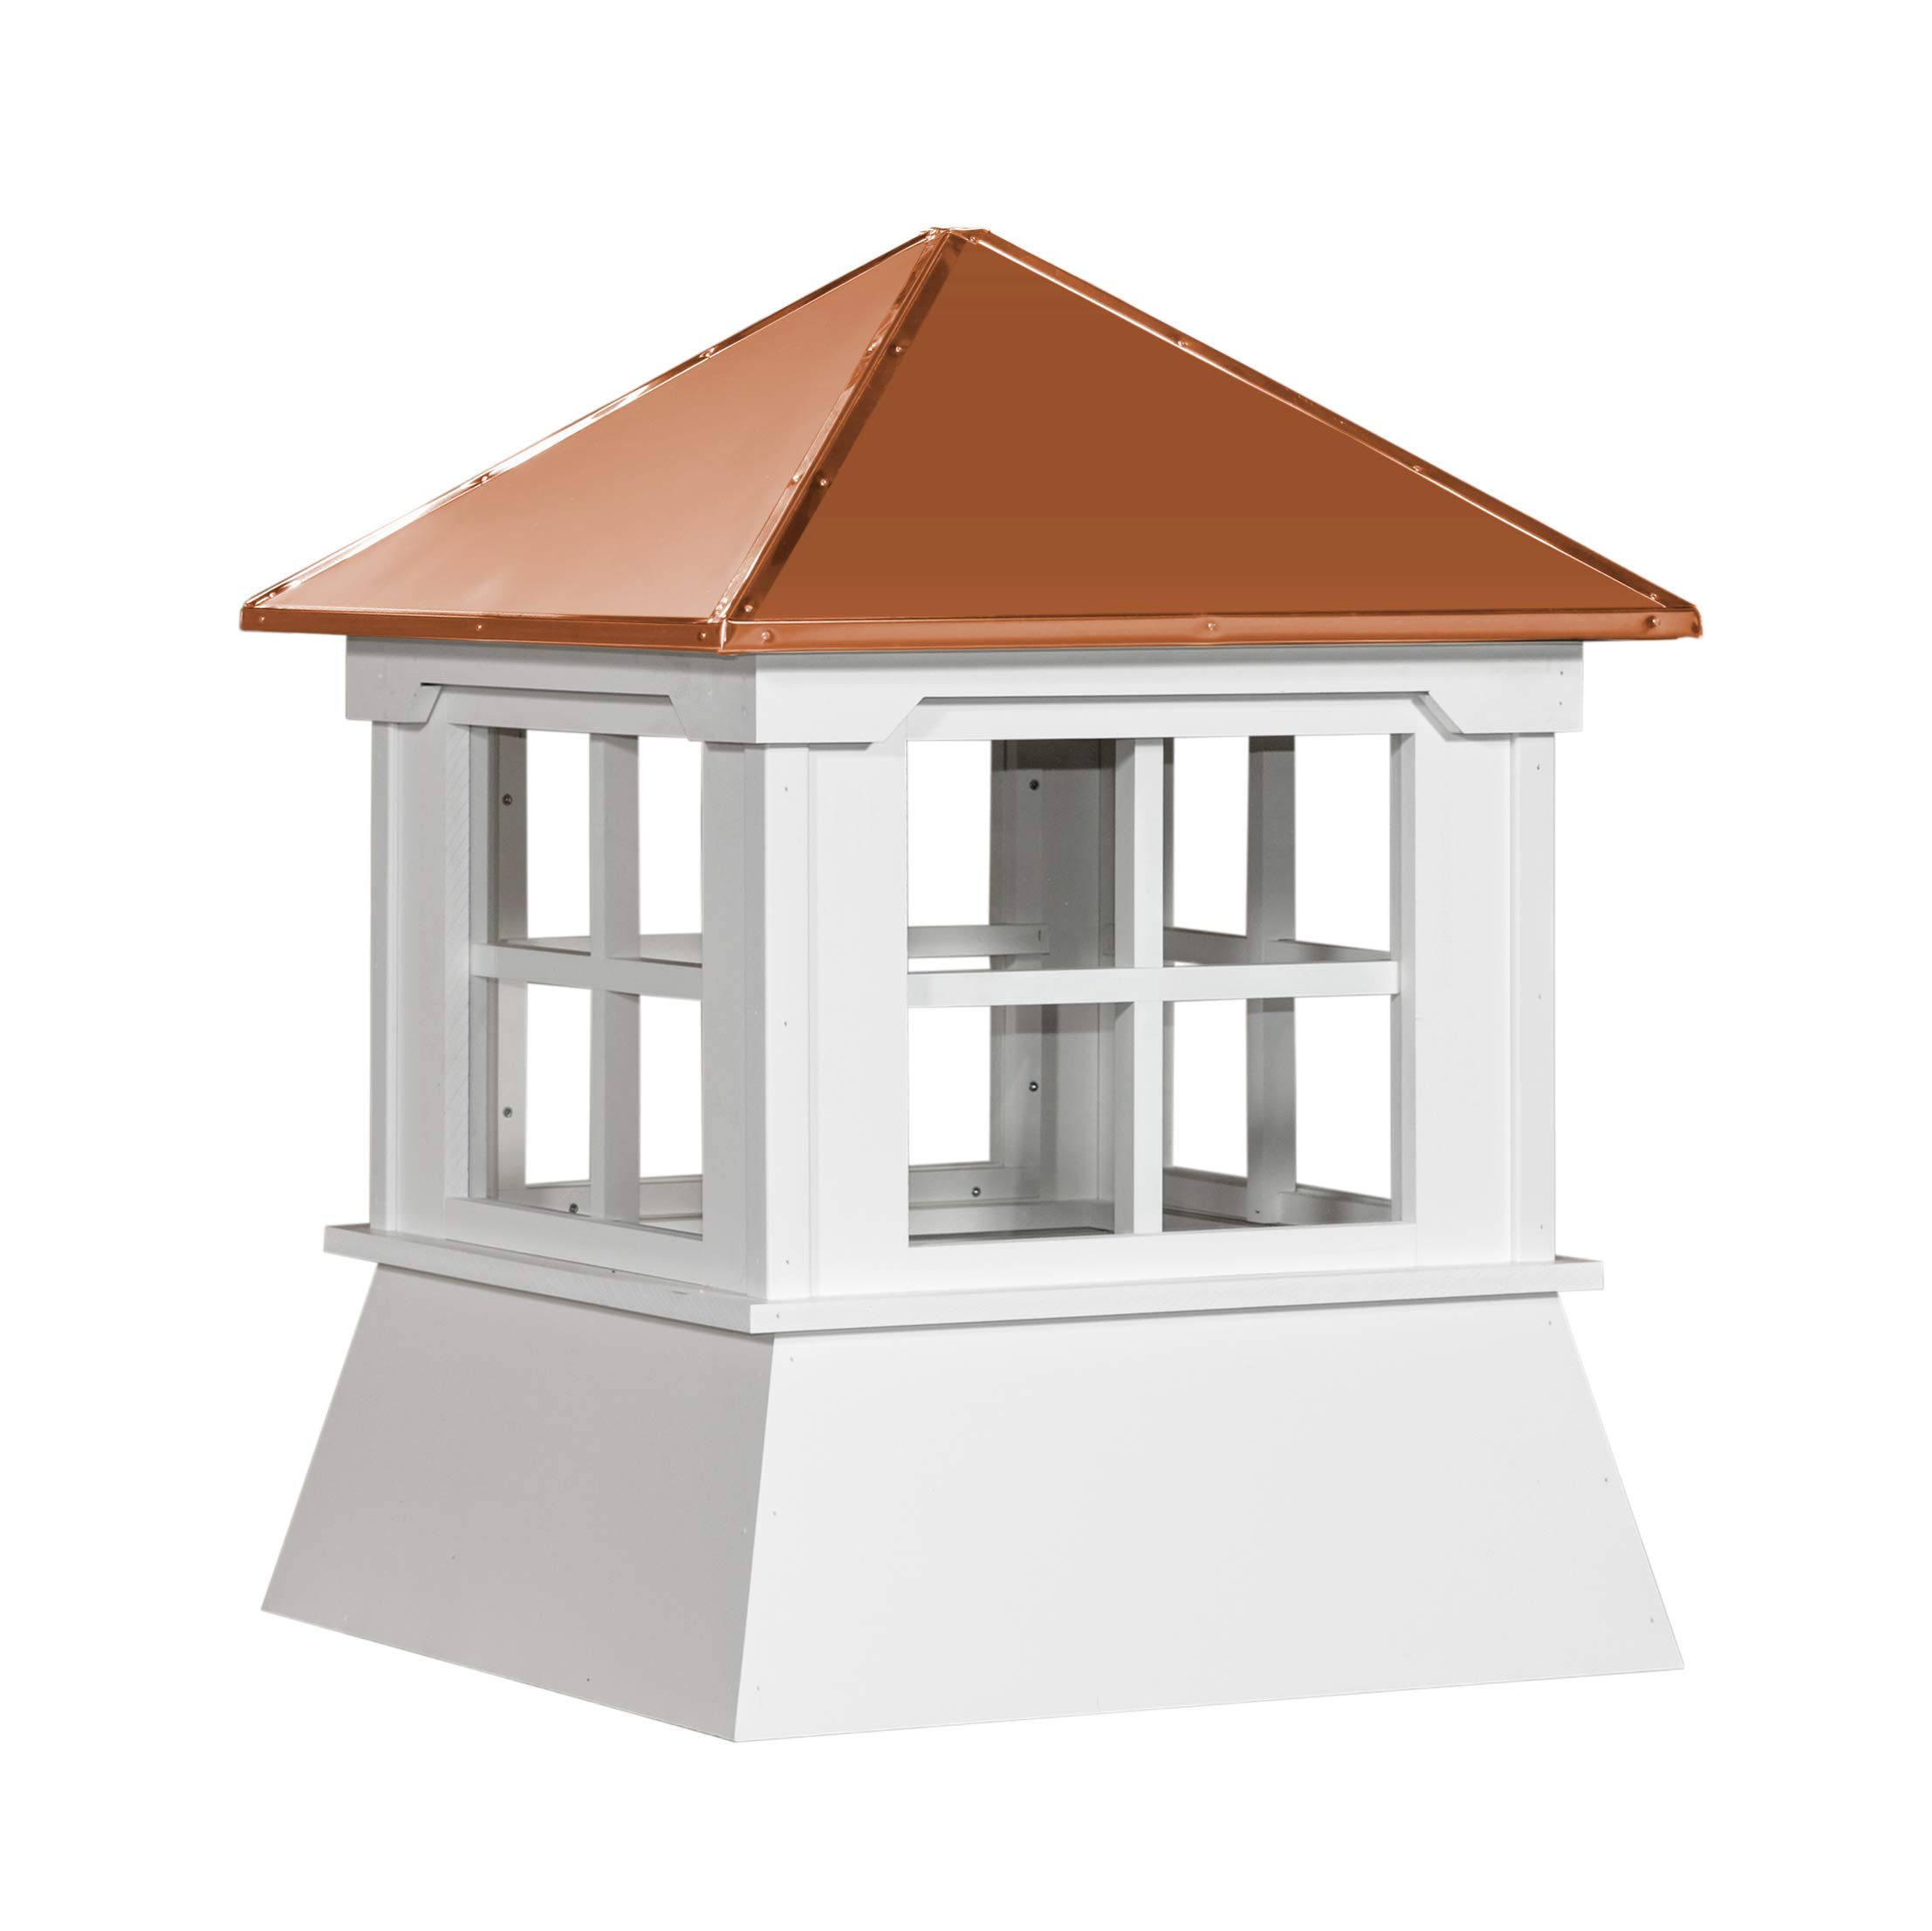 Cupola 16'' Vinyl Cupola with Window Copper Metal Hipp Roof Shed Cupola